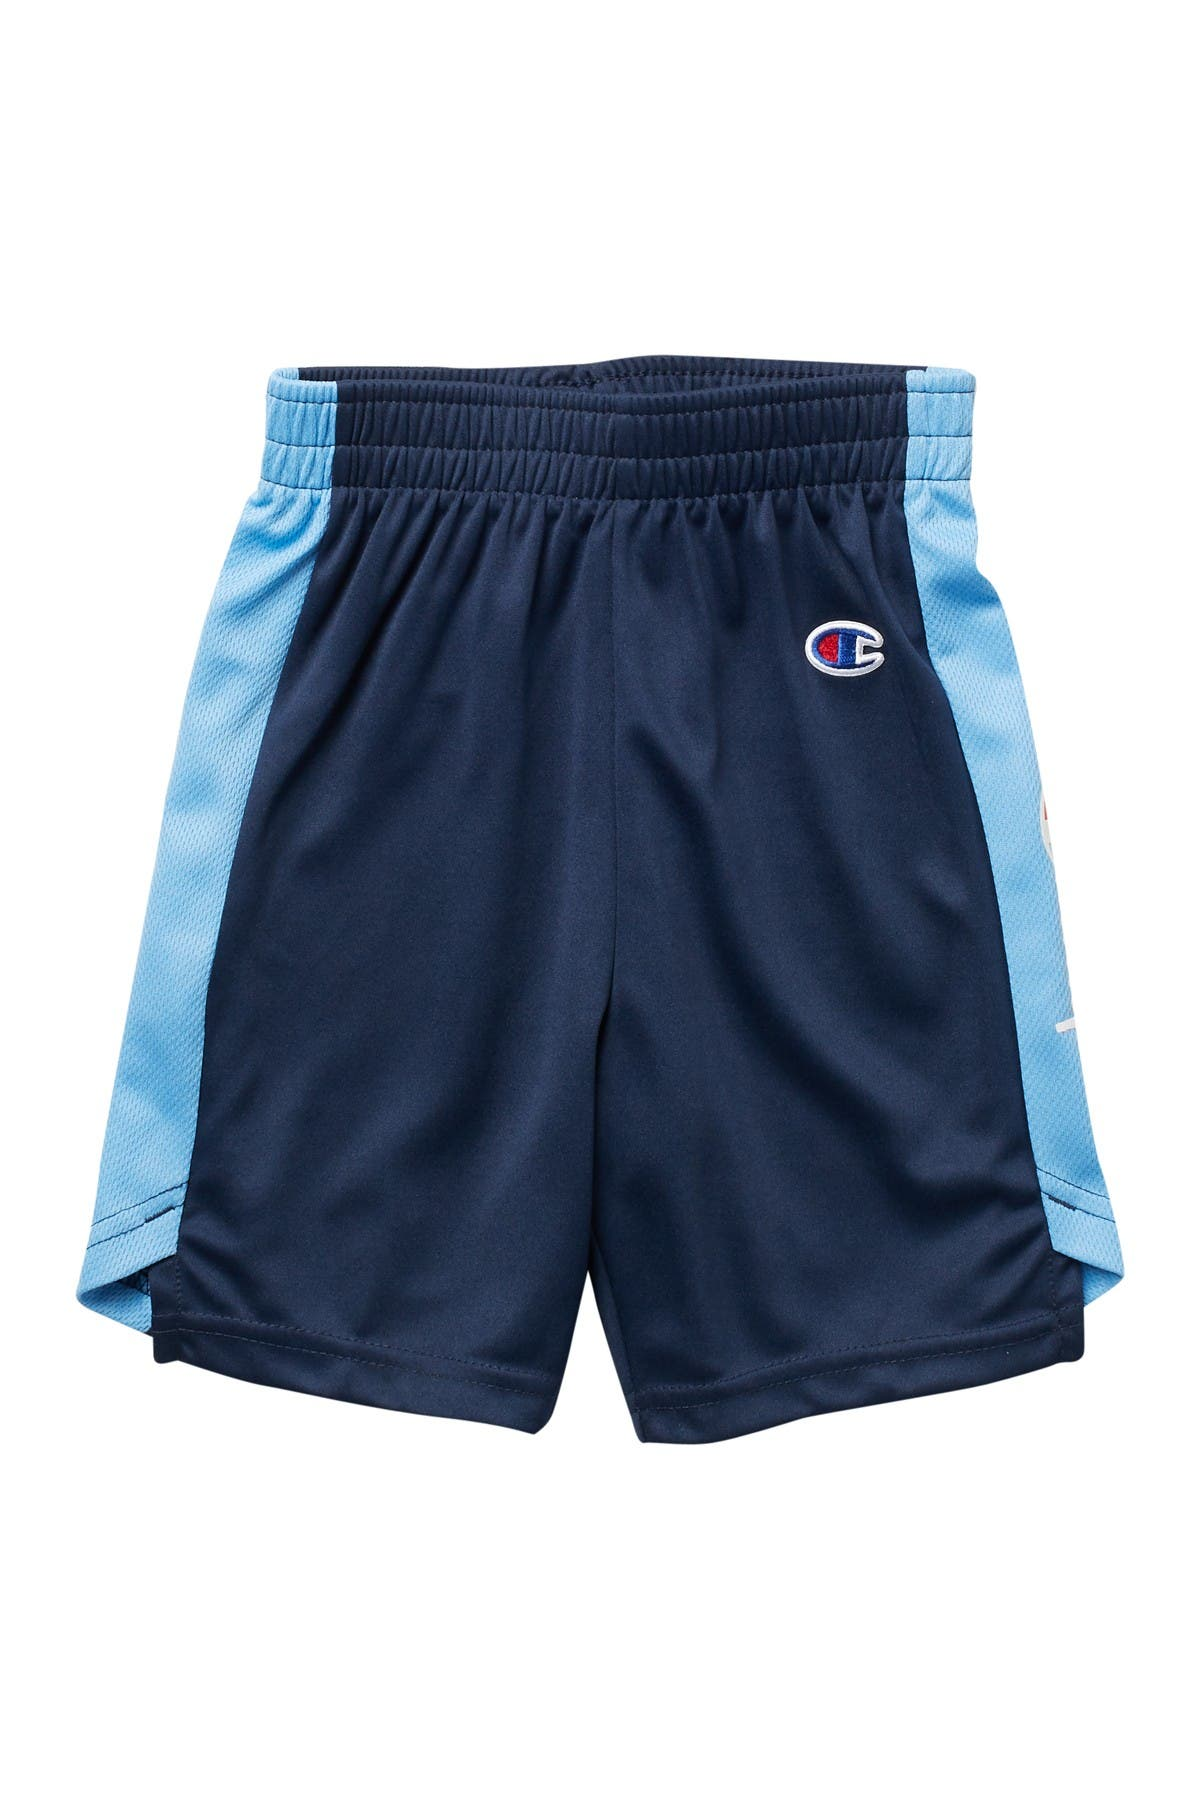 Image of Champion Script Basketball Shorts